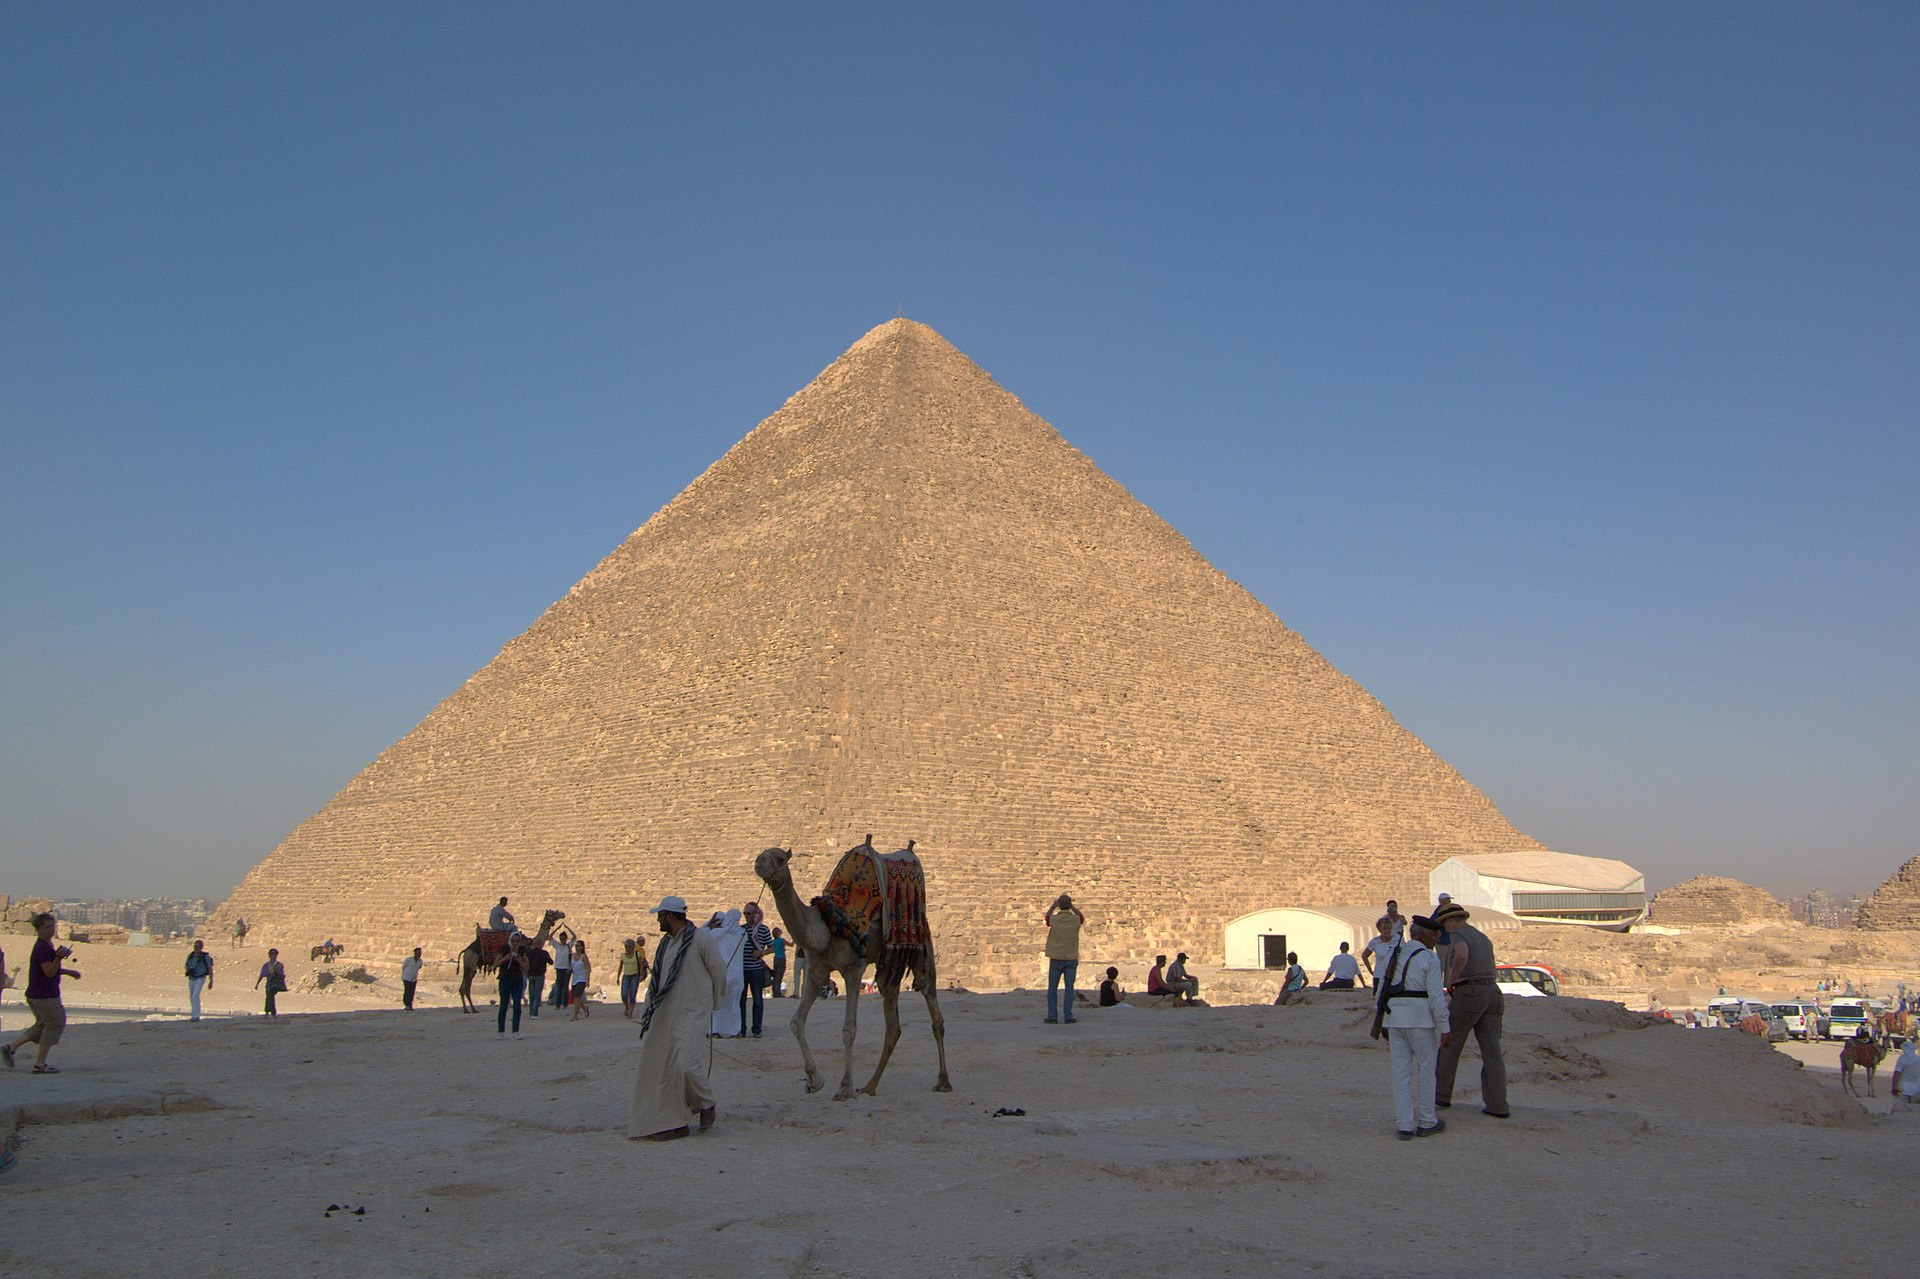 http://www.legypteantique.com/images-articles/pyramide-cheops.jpg